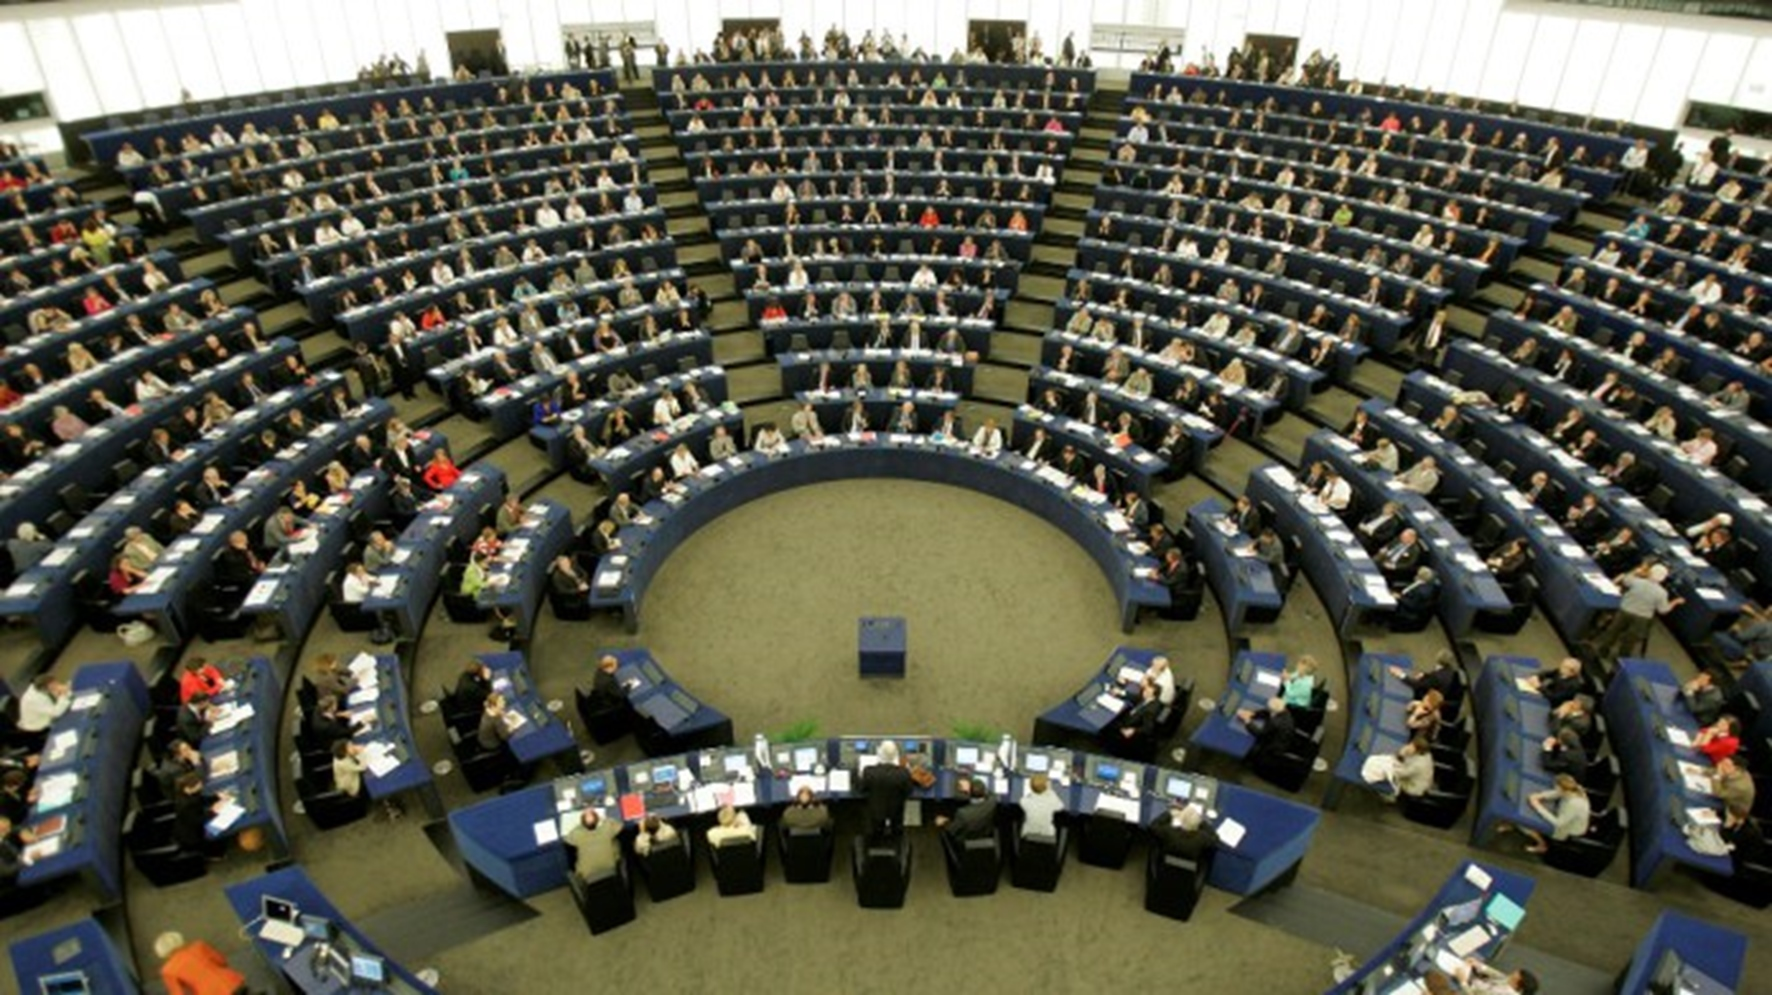 The Plenary Room Of The European Parliament In Strasbourg, Eastern France, Is Seen During The Election Of The New European Parliament's President Jerzy Buzek Of Poland, Tuesday, July 14, 2009. (AP Photo/Lionel Cironneau)